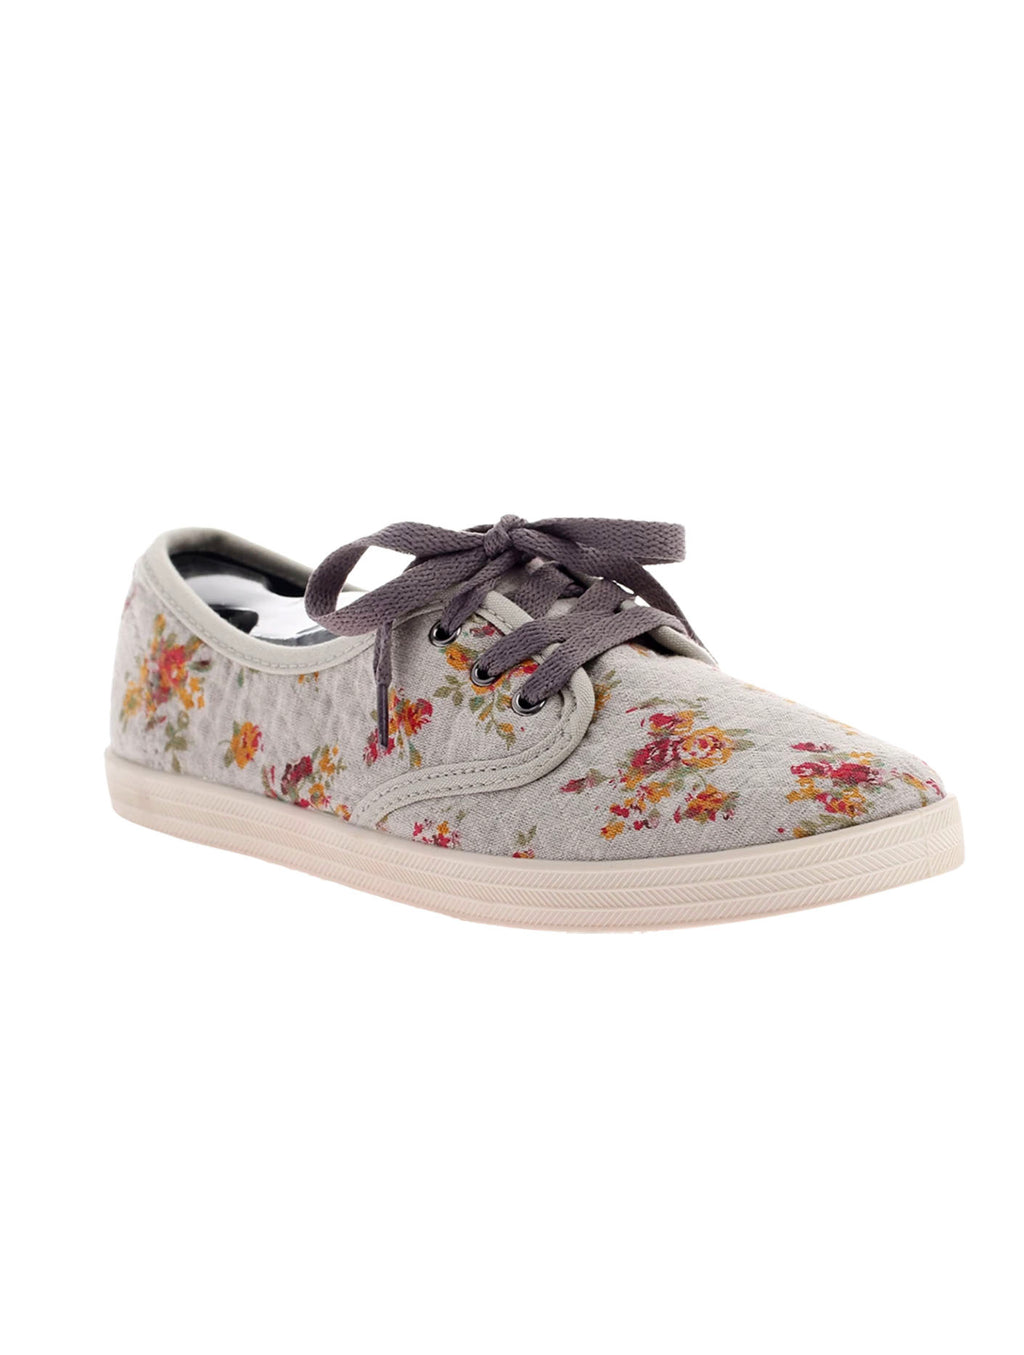 Dimmi Improve Sneaker in Grey Floral